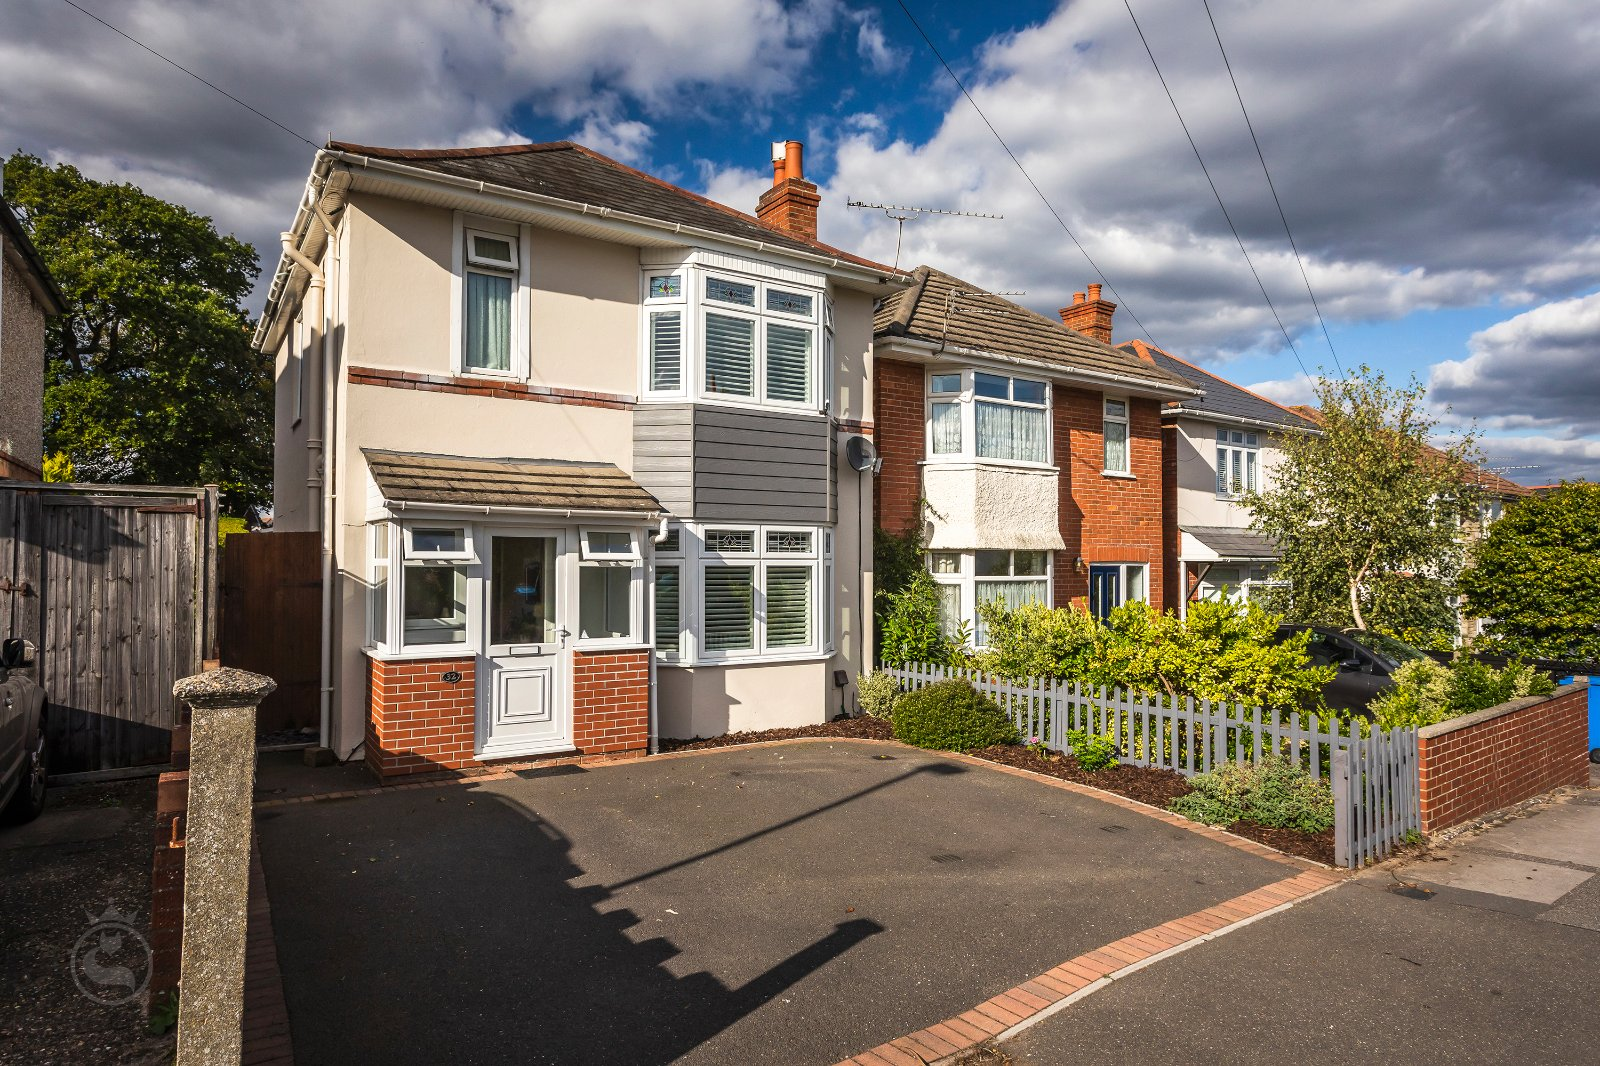 3 bed house for sale in Wroxham Road, Branksome  - Property Image 1